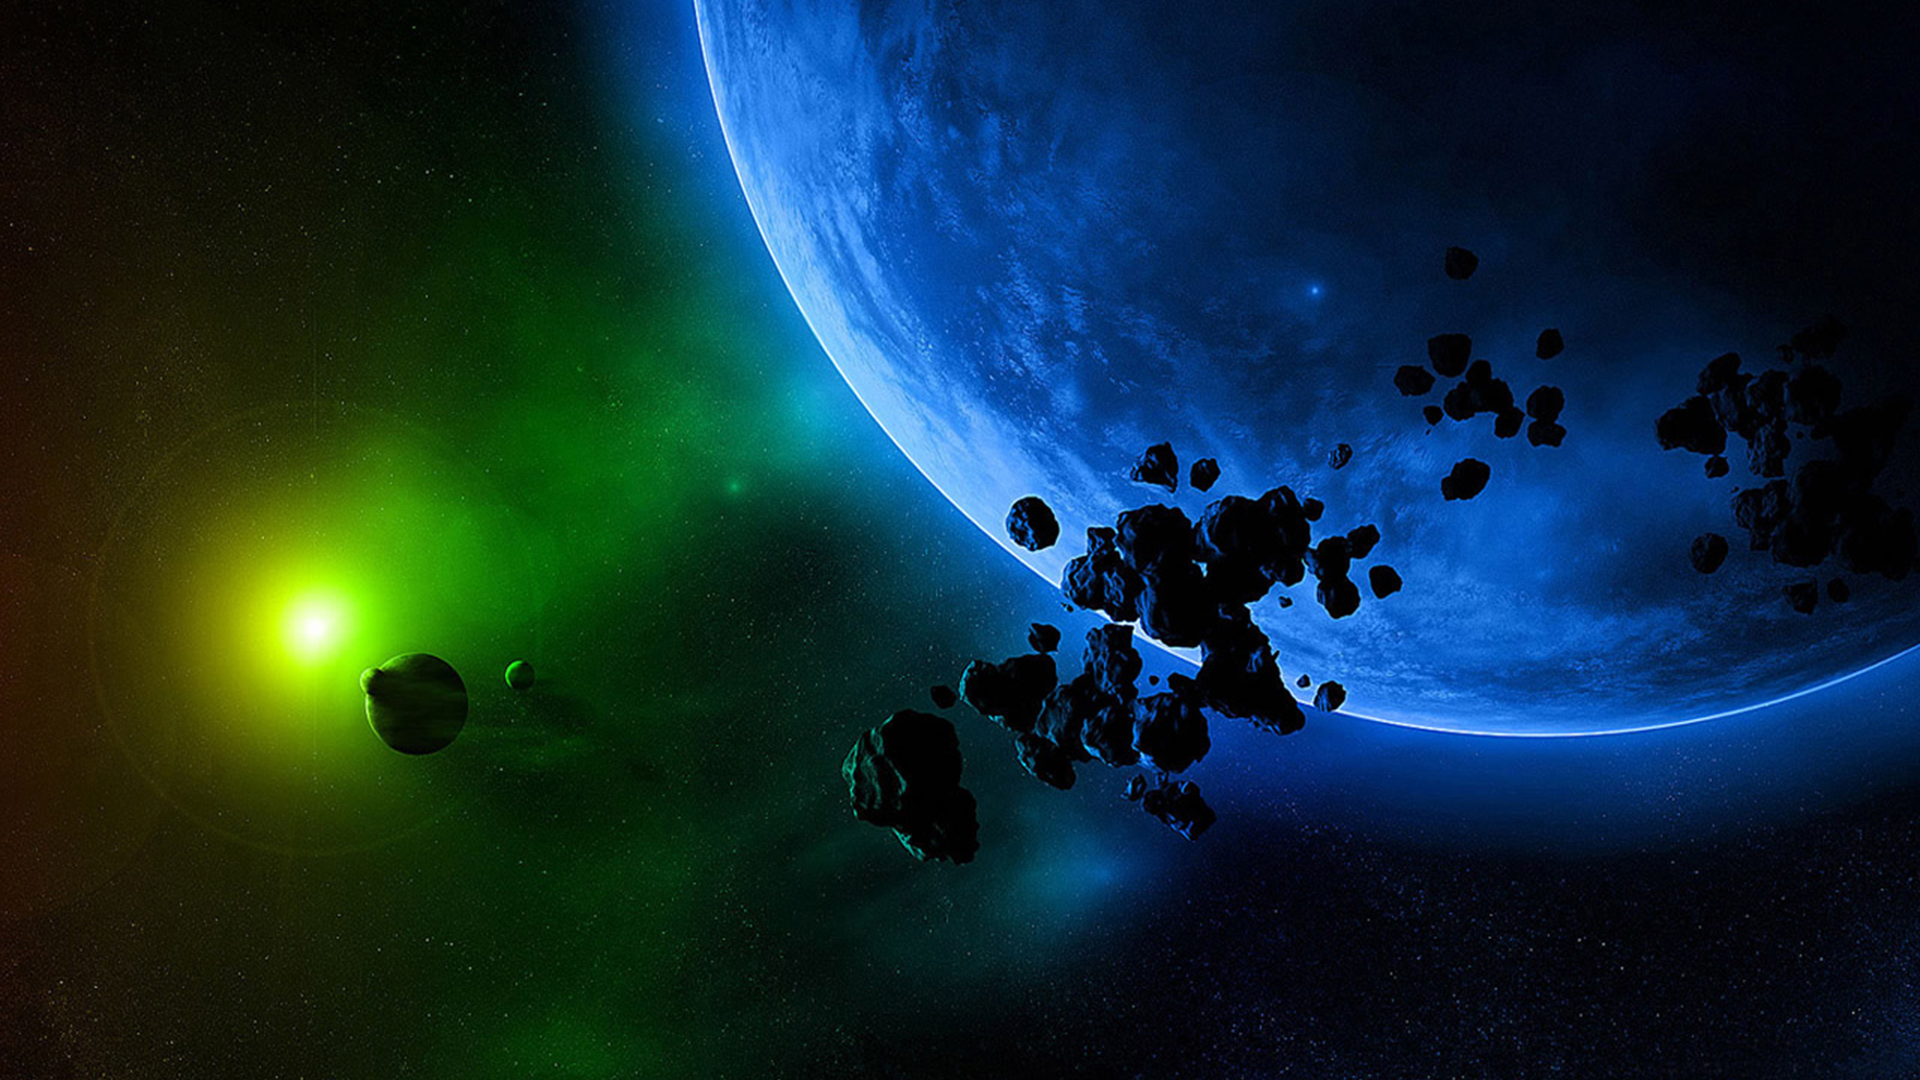 planets and space - HD1920×1080